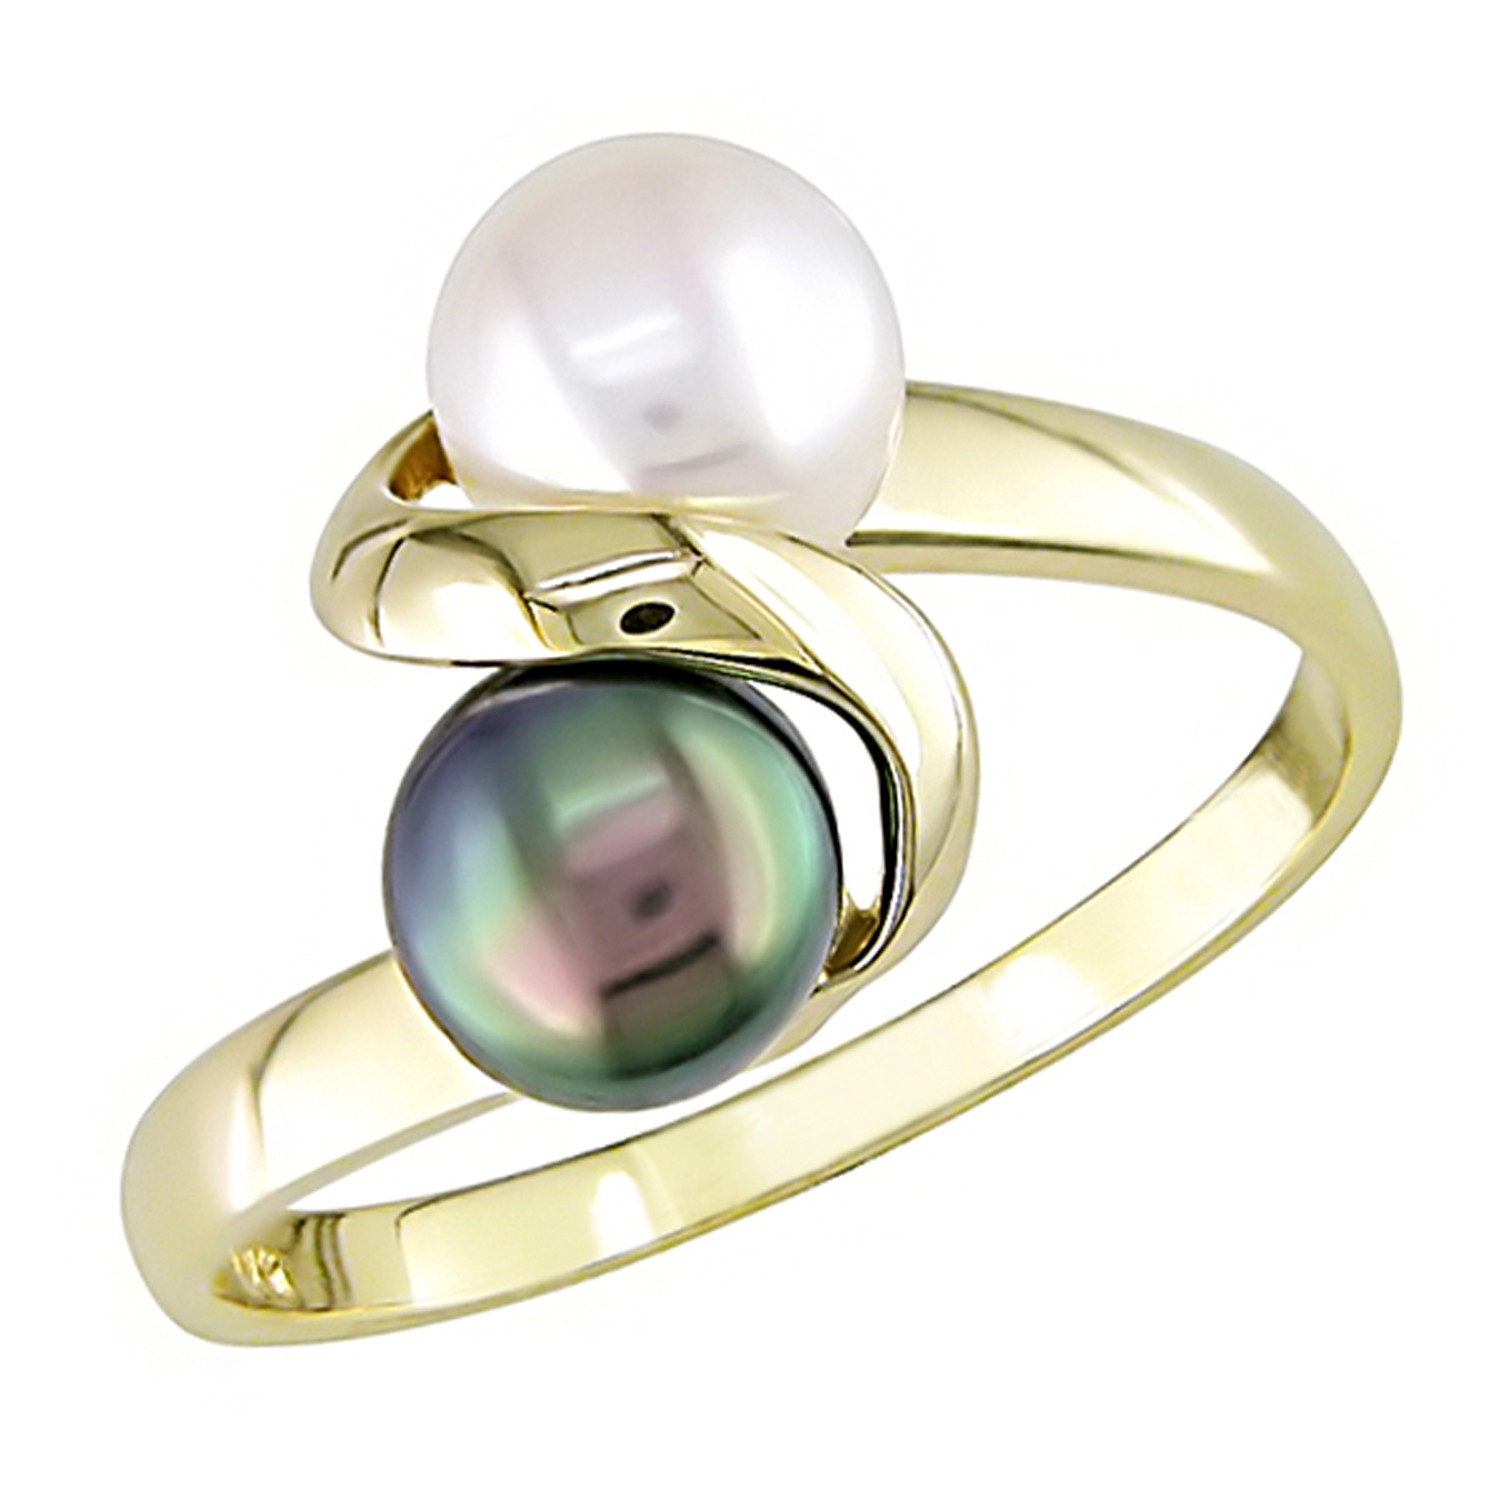 freshwater lyst ring dragon john ruby white naga sapphire normal engagement black jewelry gallery small silver product pearl hardy rings sterling